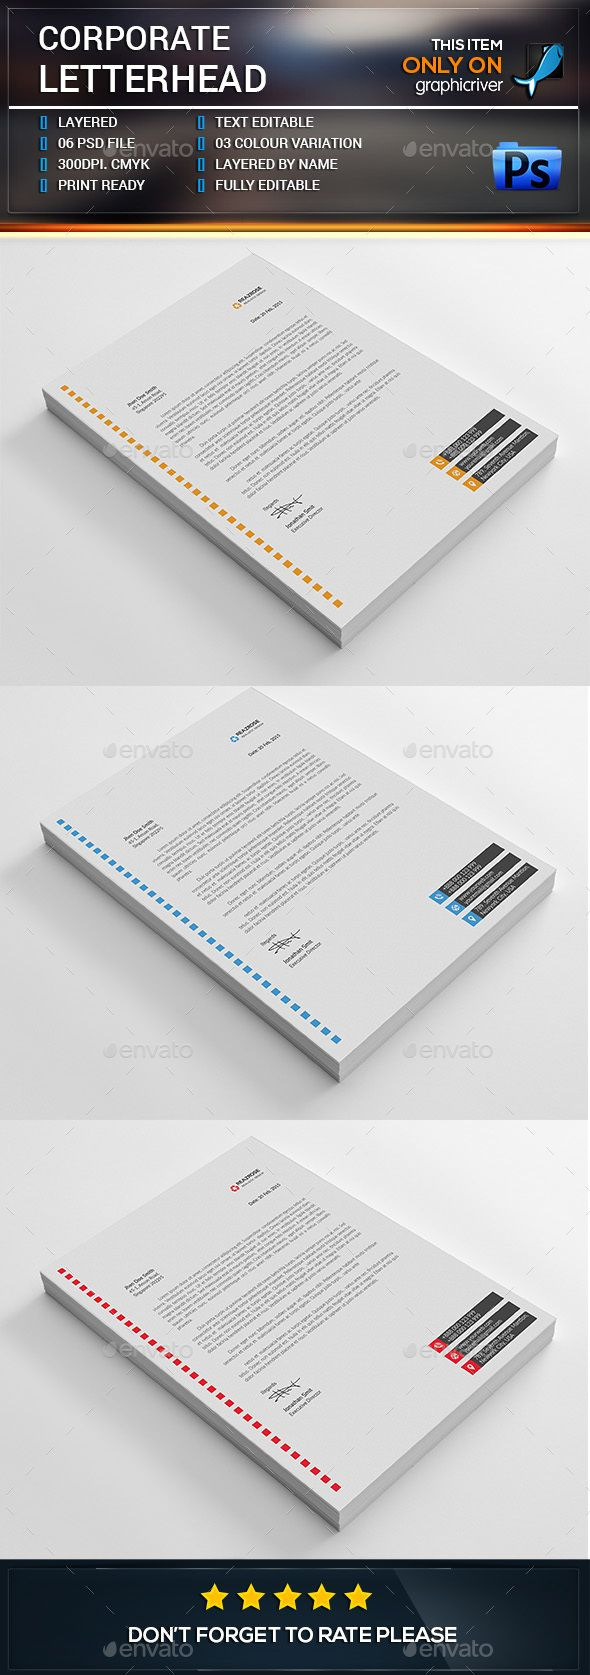 Best Letterheads Images On   Graphics Letterhead And